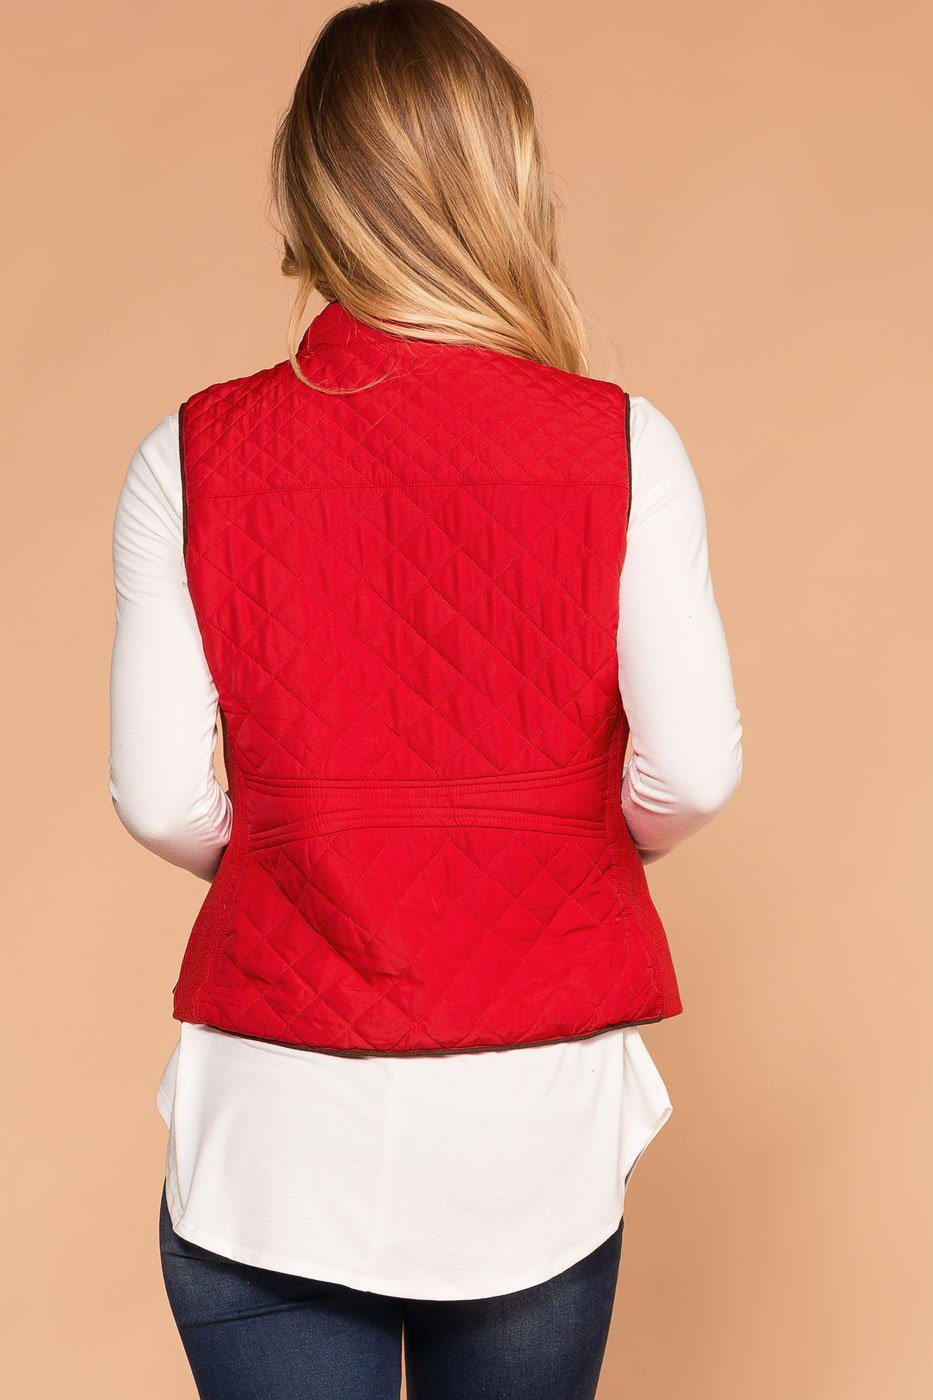 Vail Quilted Vest - Red | Active Basic